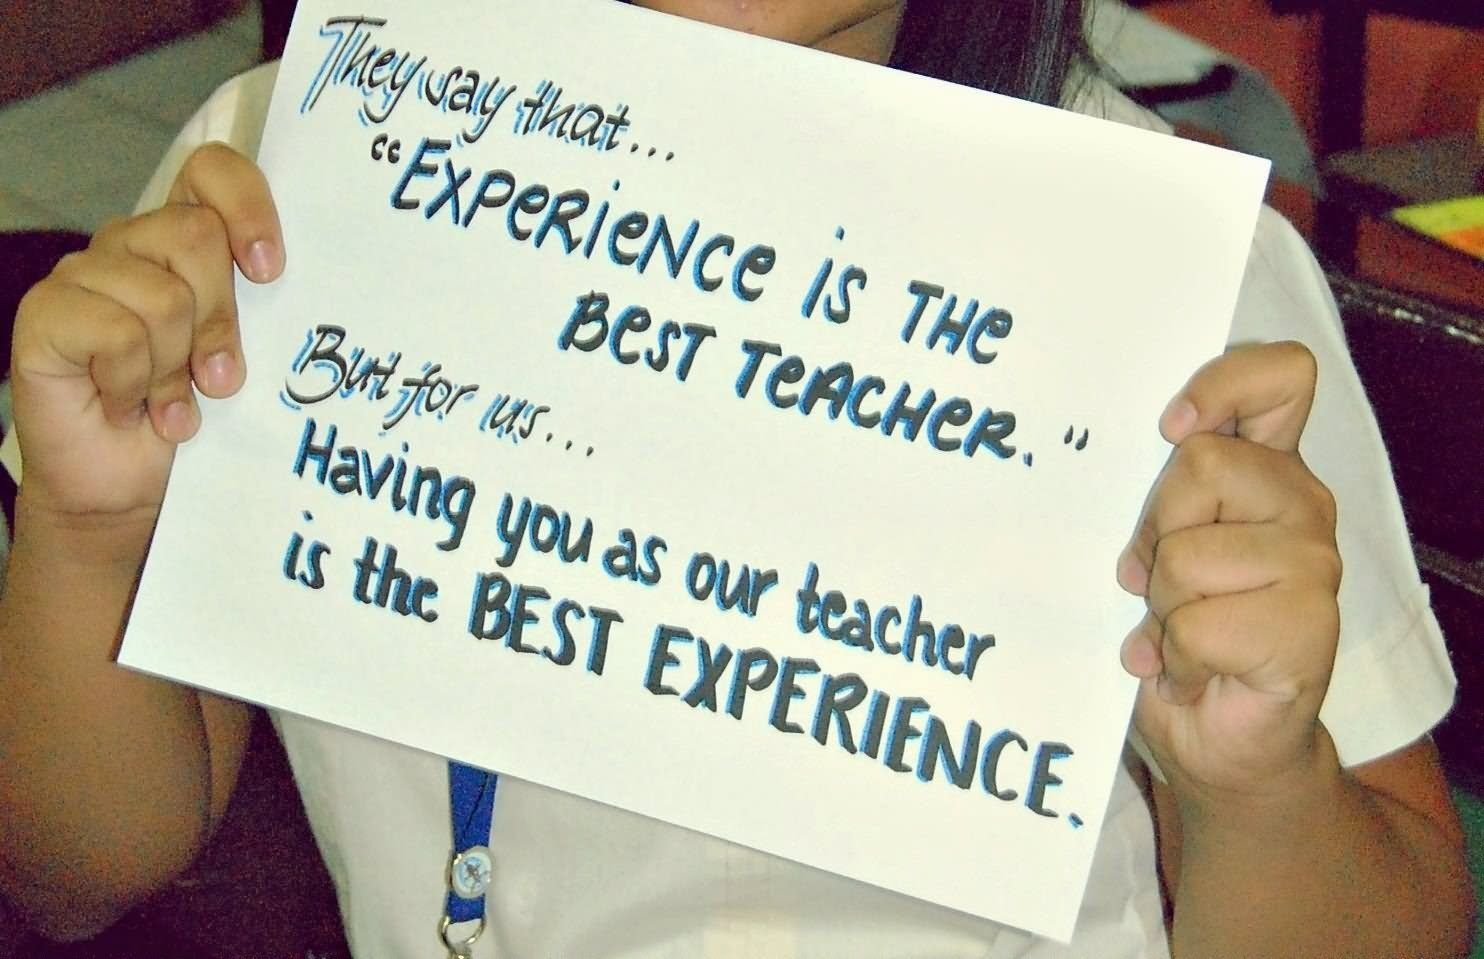 They Say That Experience Is The Best Teacher But For Us Having You ...